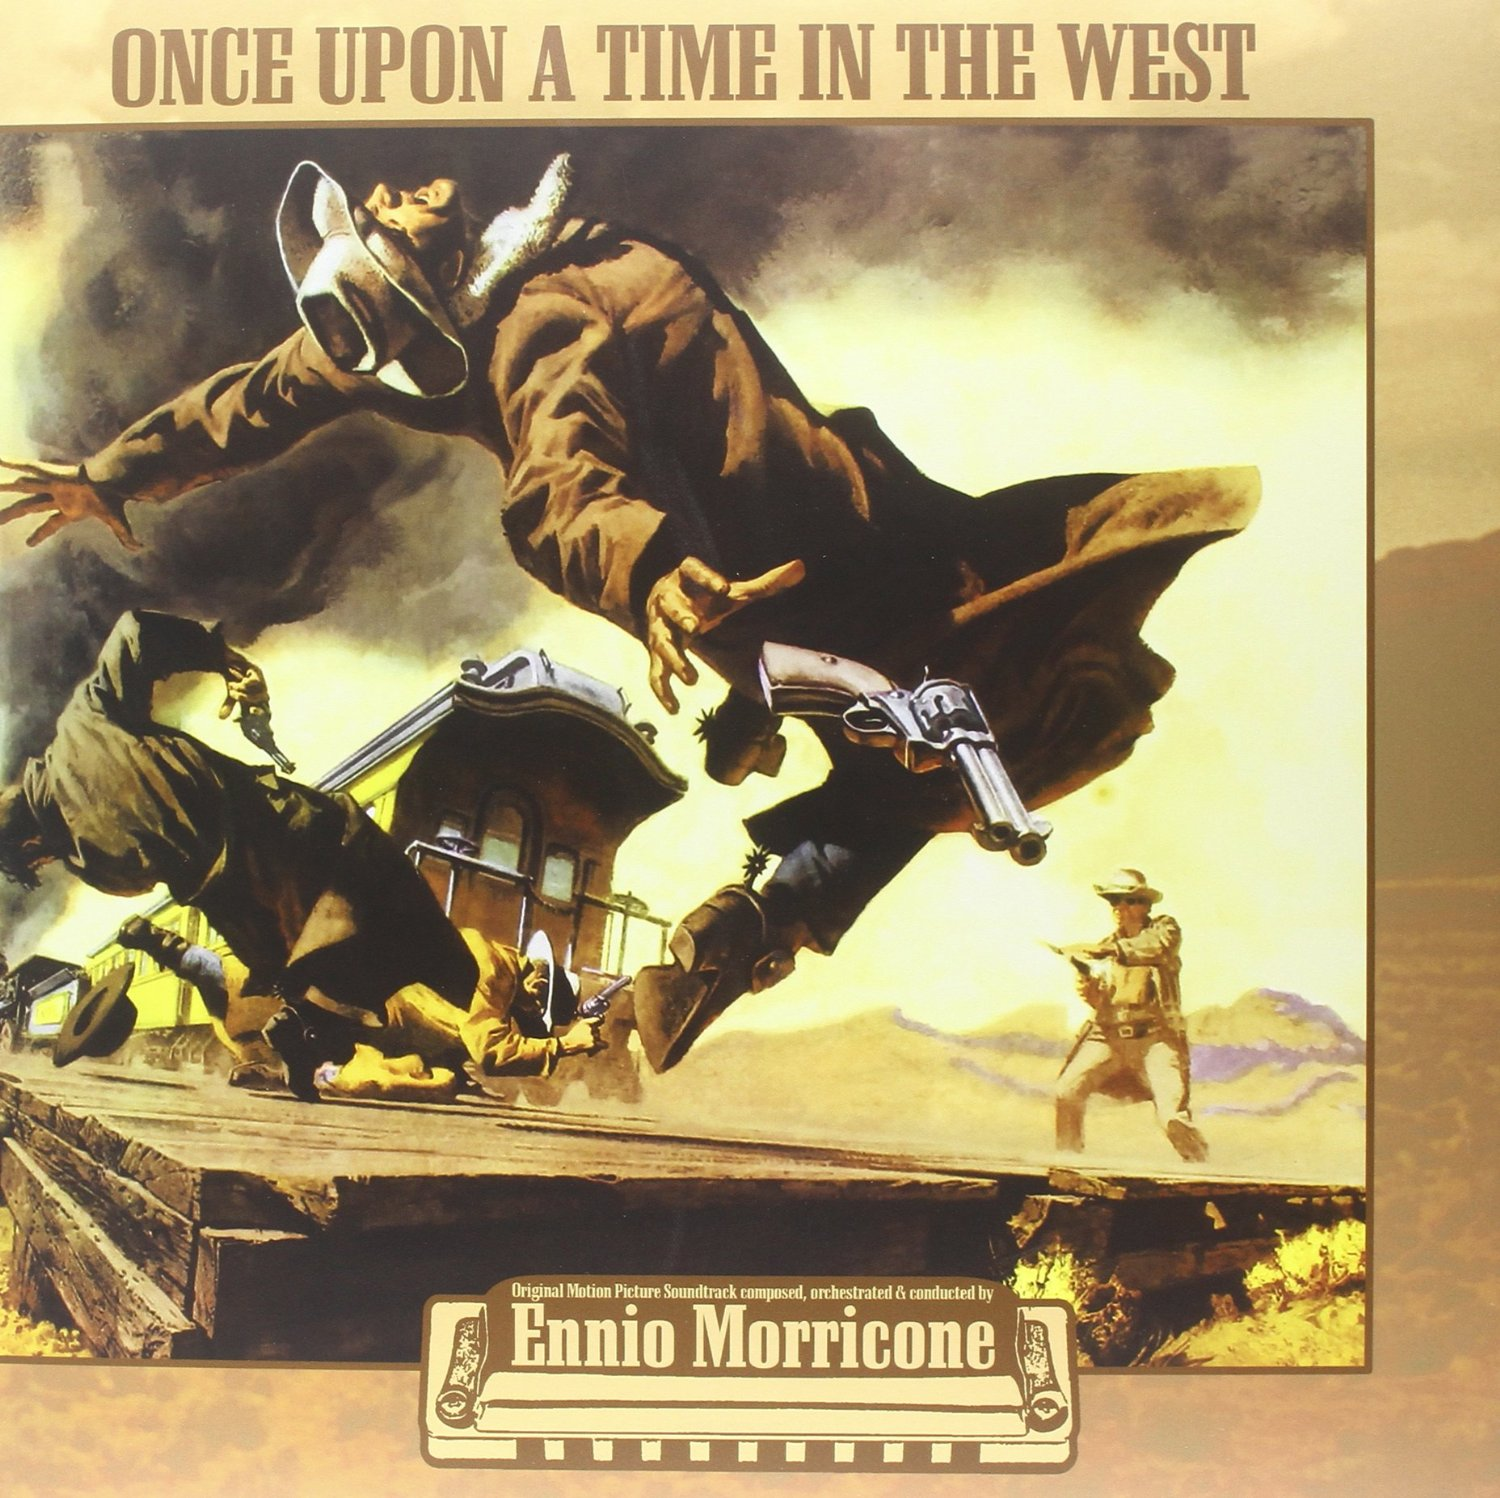 C'era una volta il West - Once upon a time in the West (1968) (vinile)